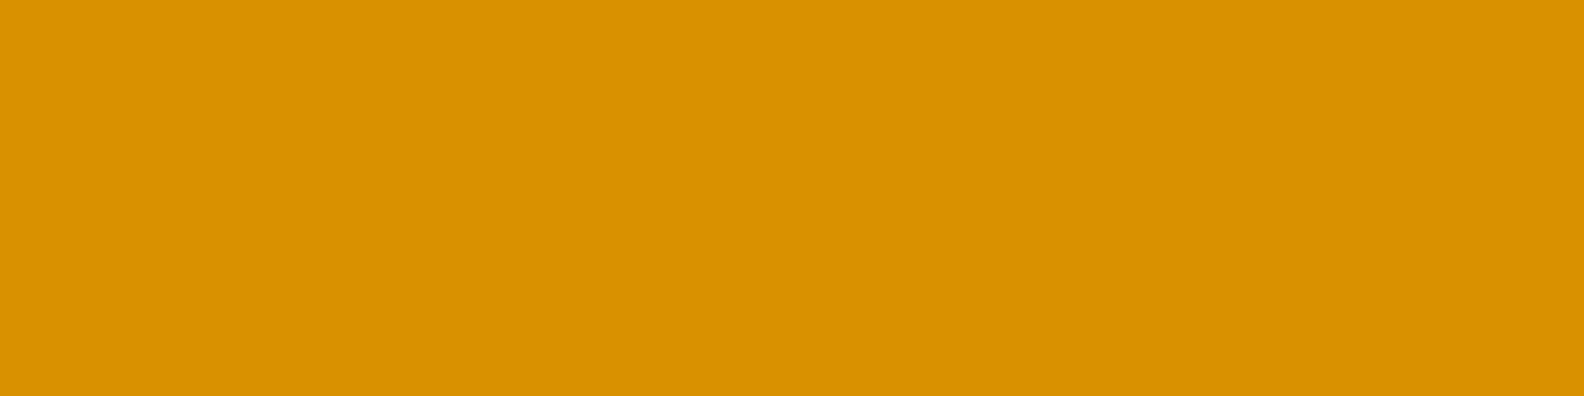 1584x396 Harvest Gold Solid Color Background